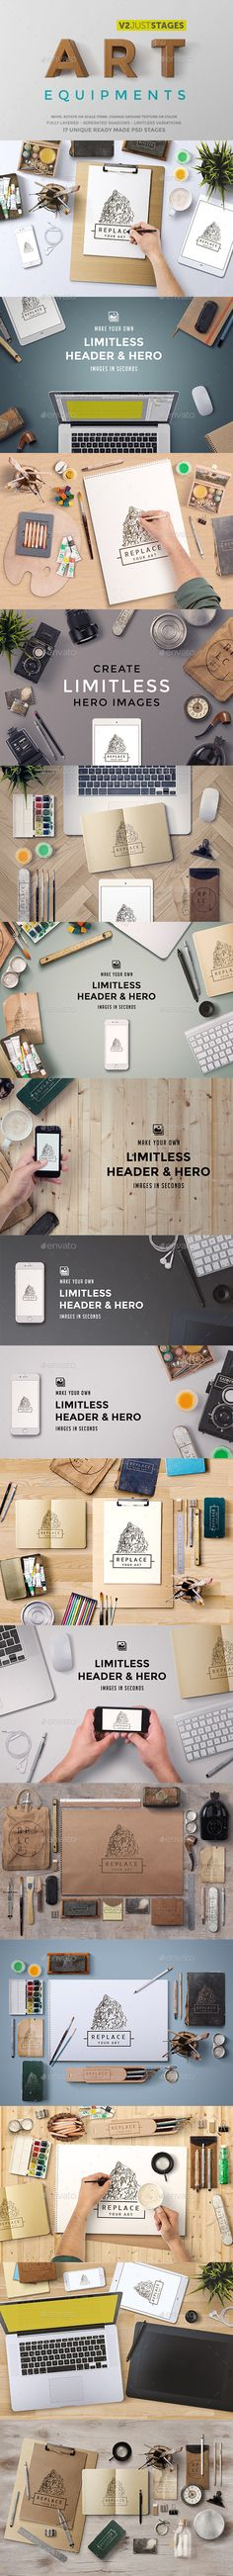 Art Equipments Mock Up - Hero Images PSD Template Graphics. Download here: http://graphicriver.net/item/art-equipments-mock-up/9414880?s_rank=89&ref=yinkira